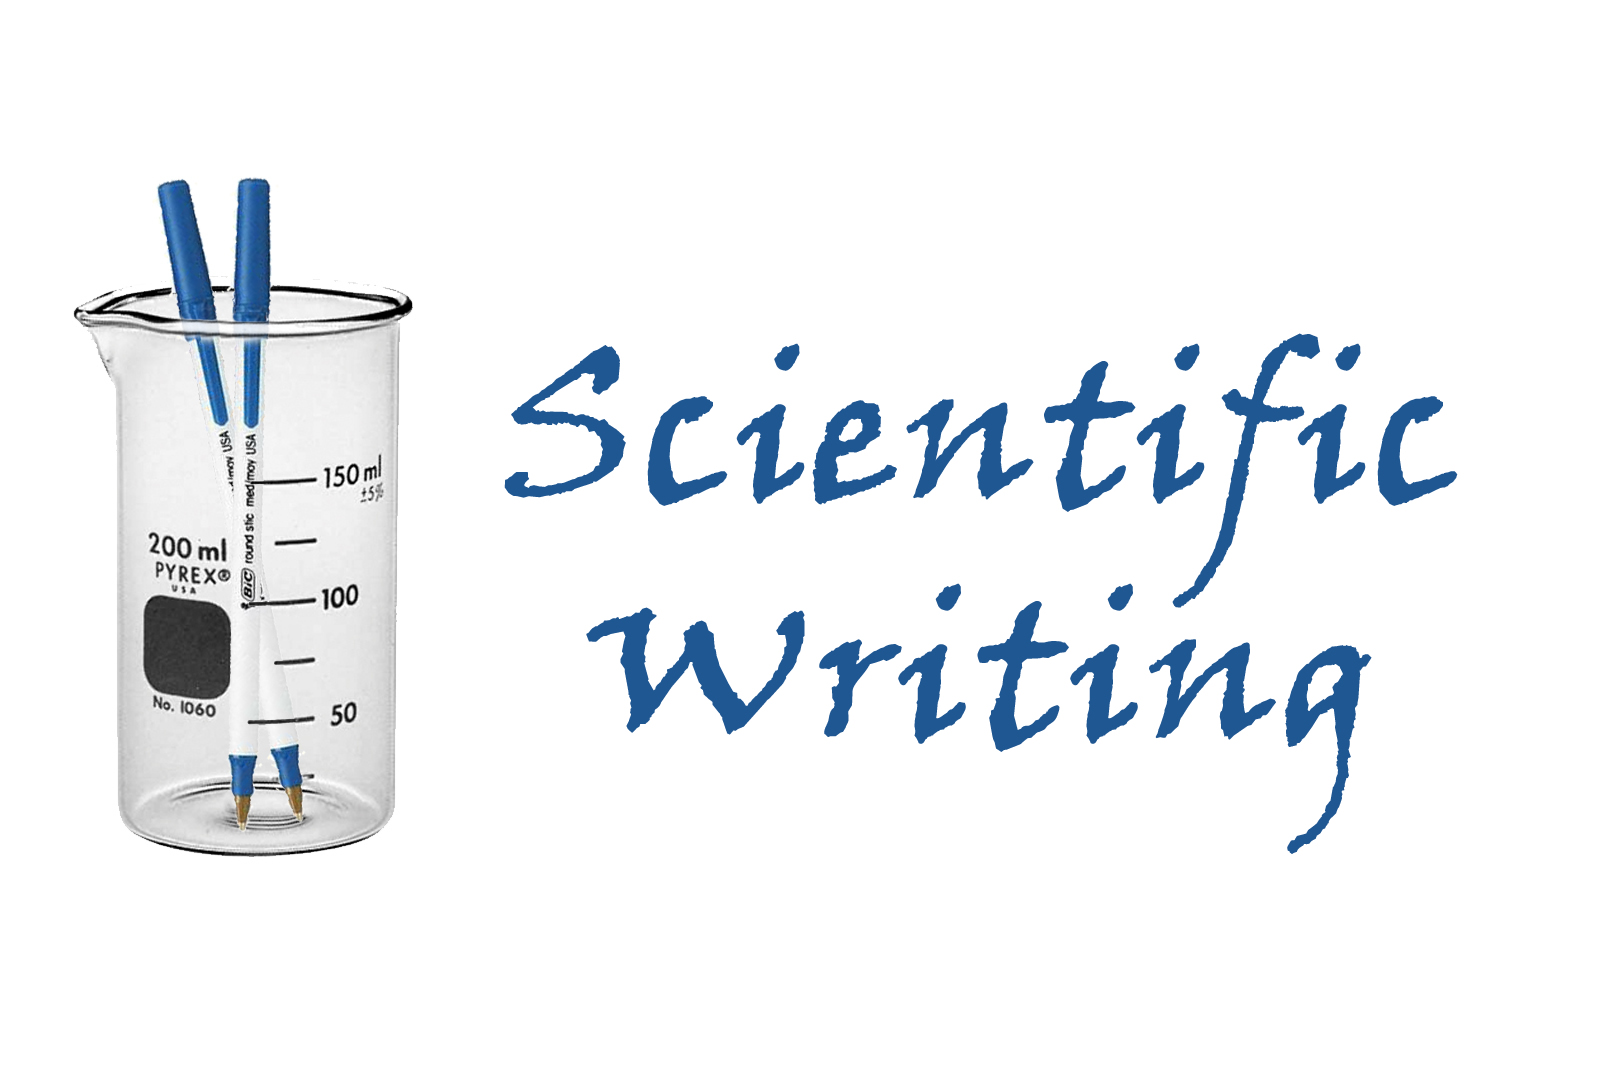 style manual for scientific writing